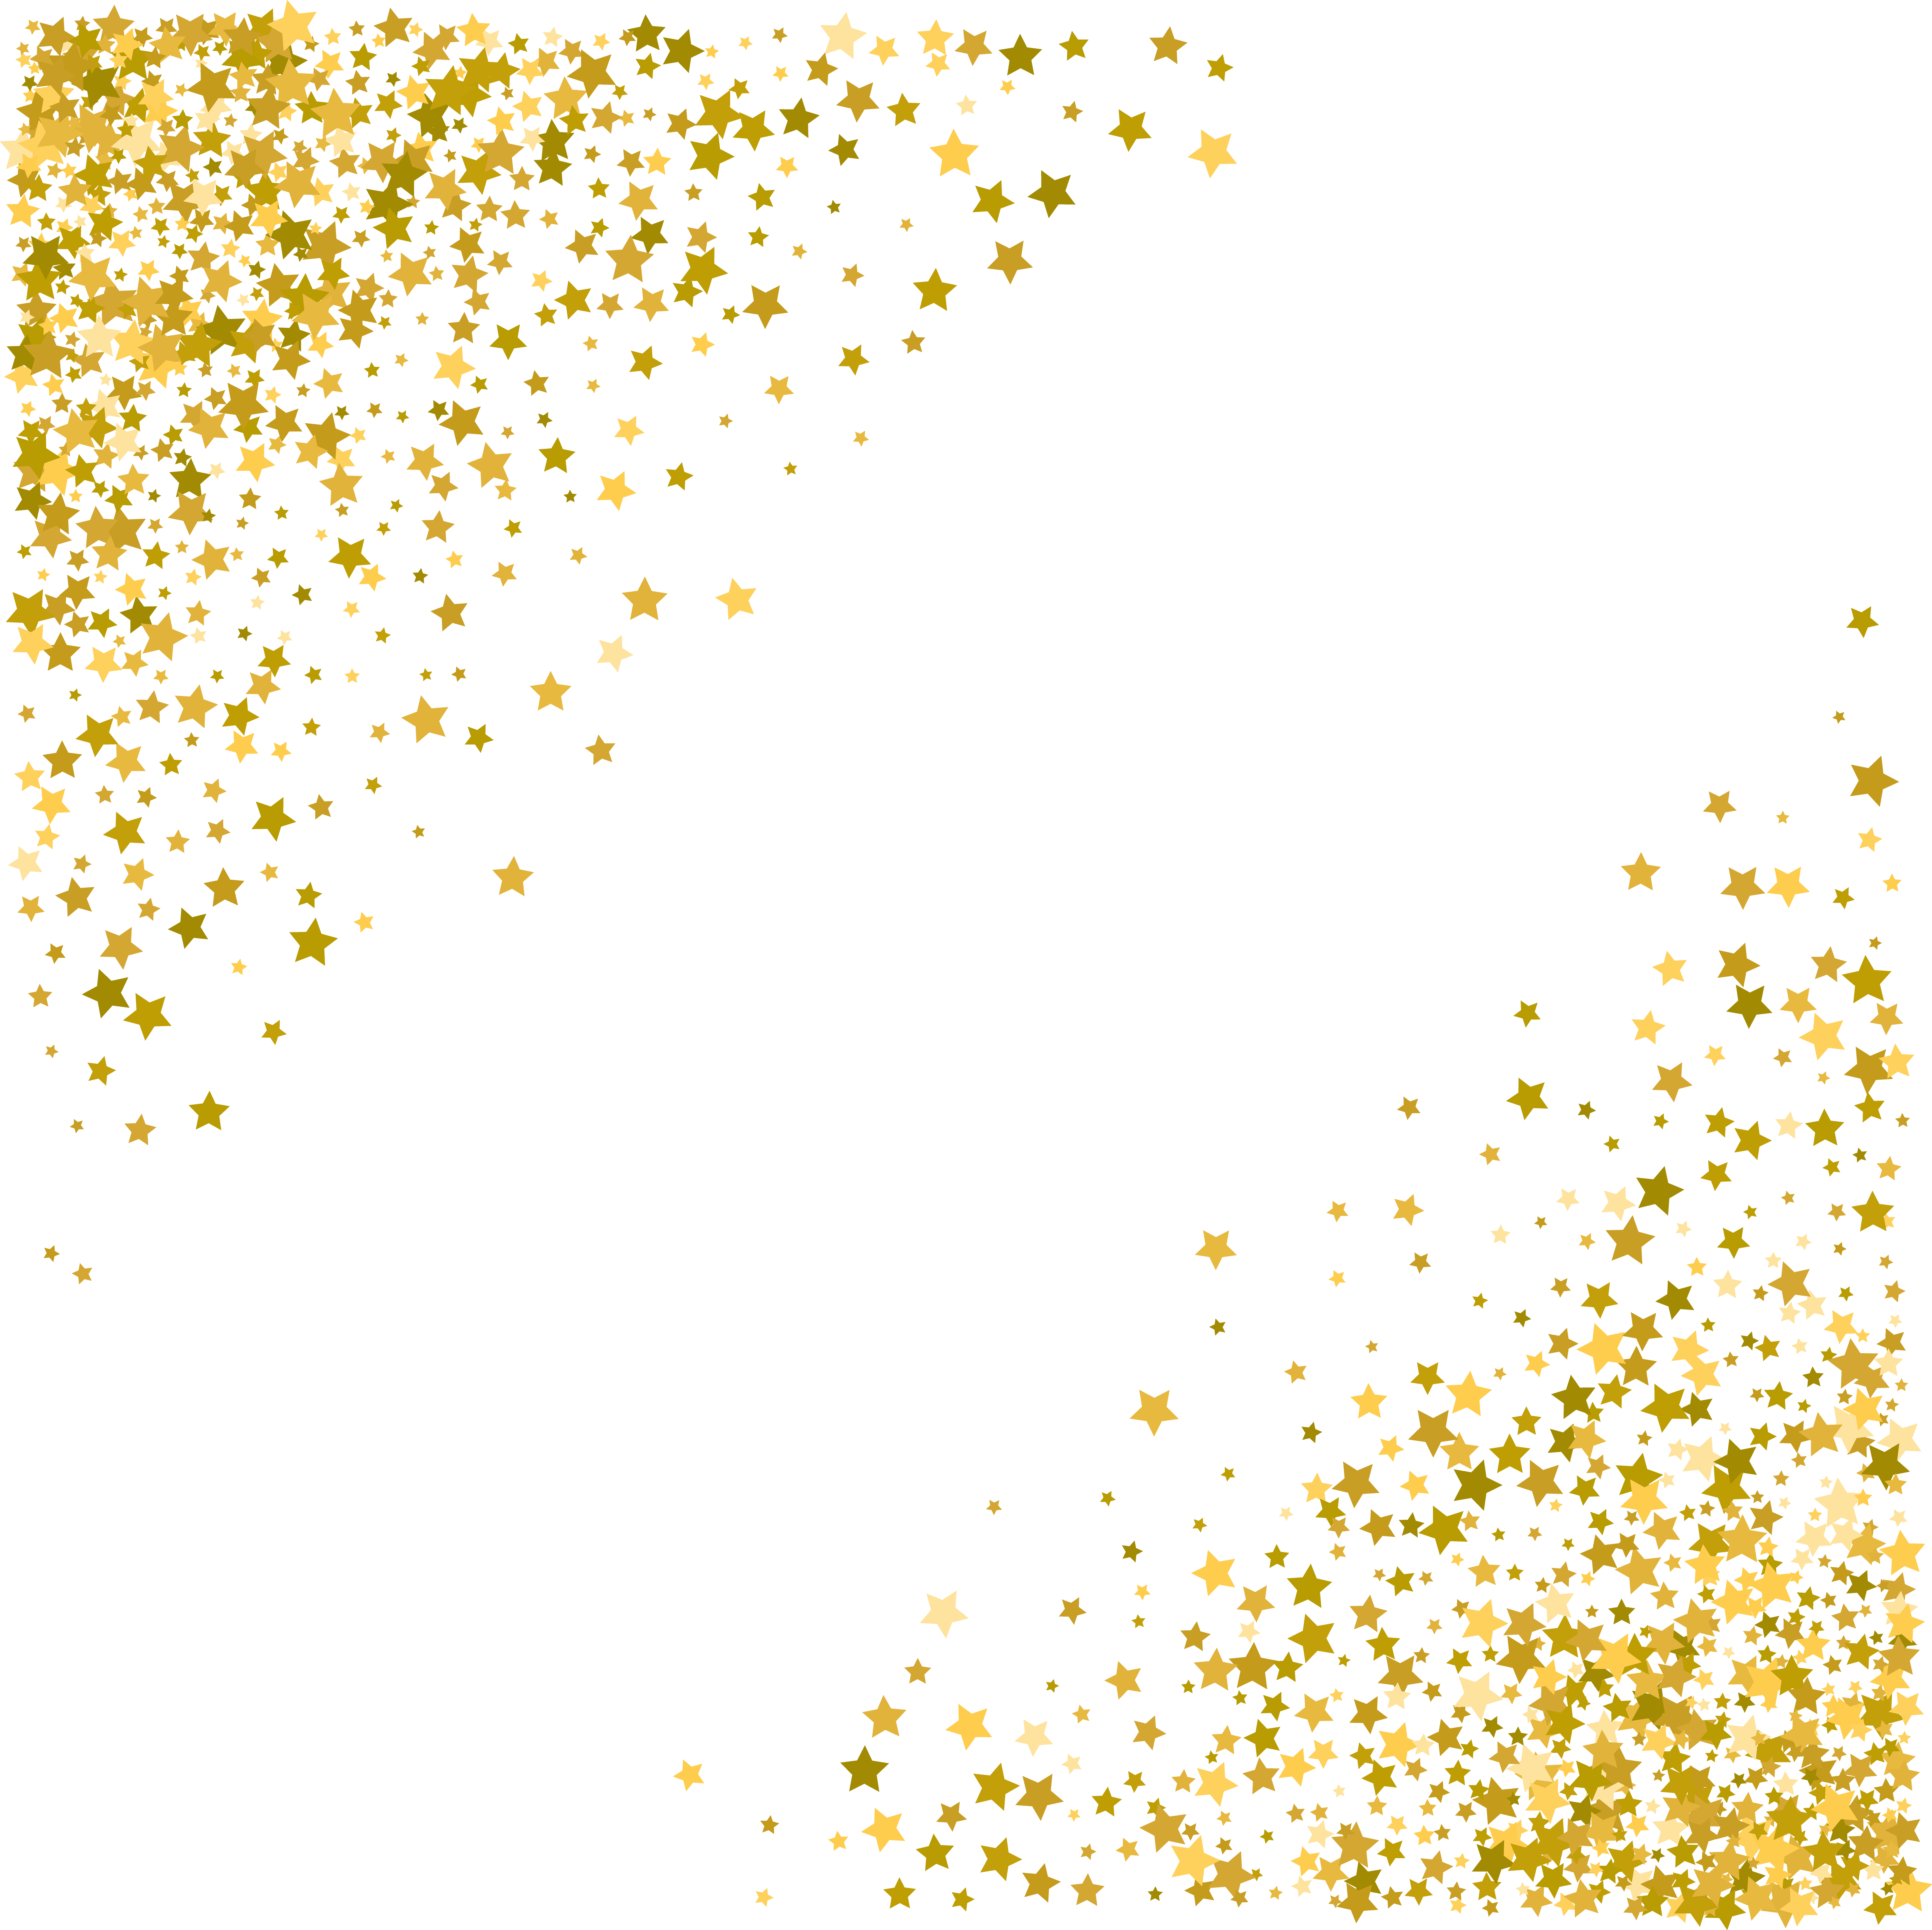 Decoration clipart image gallery. Stars png picture library stock